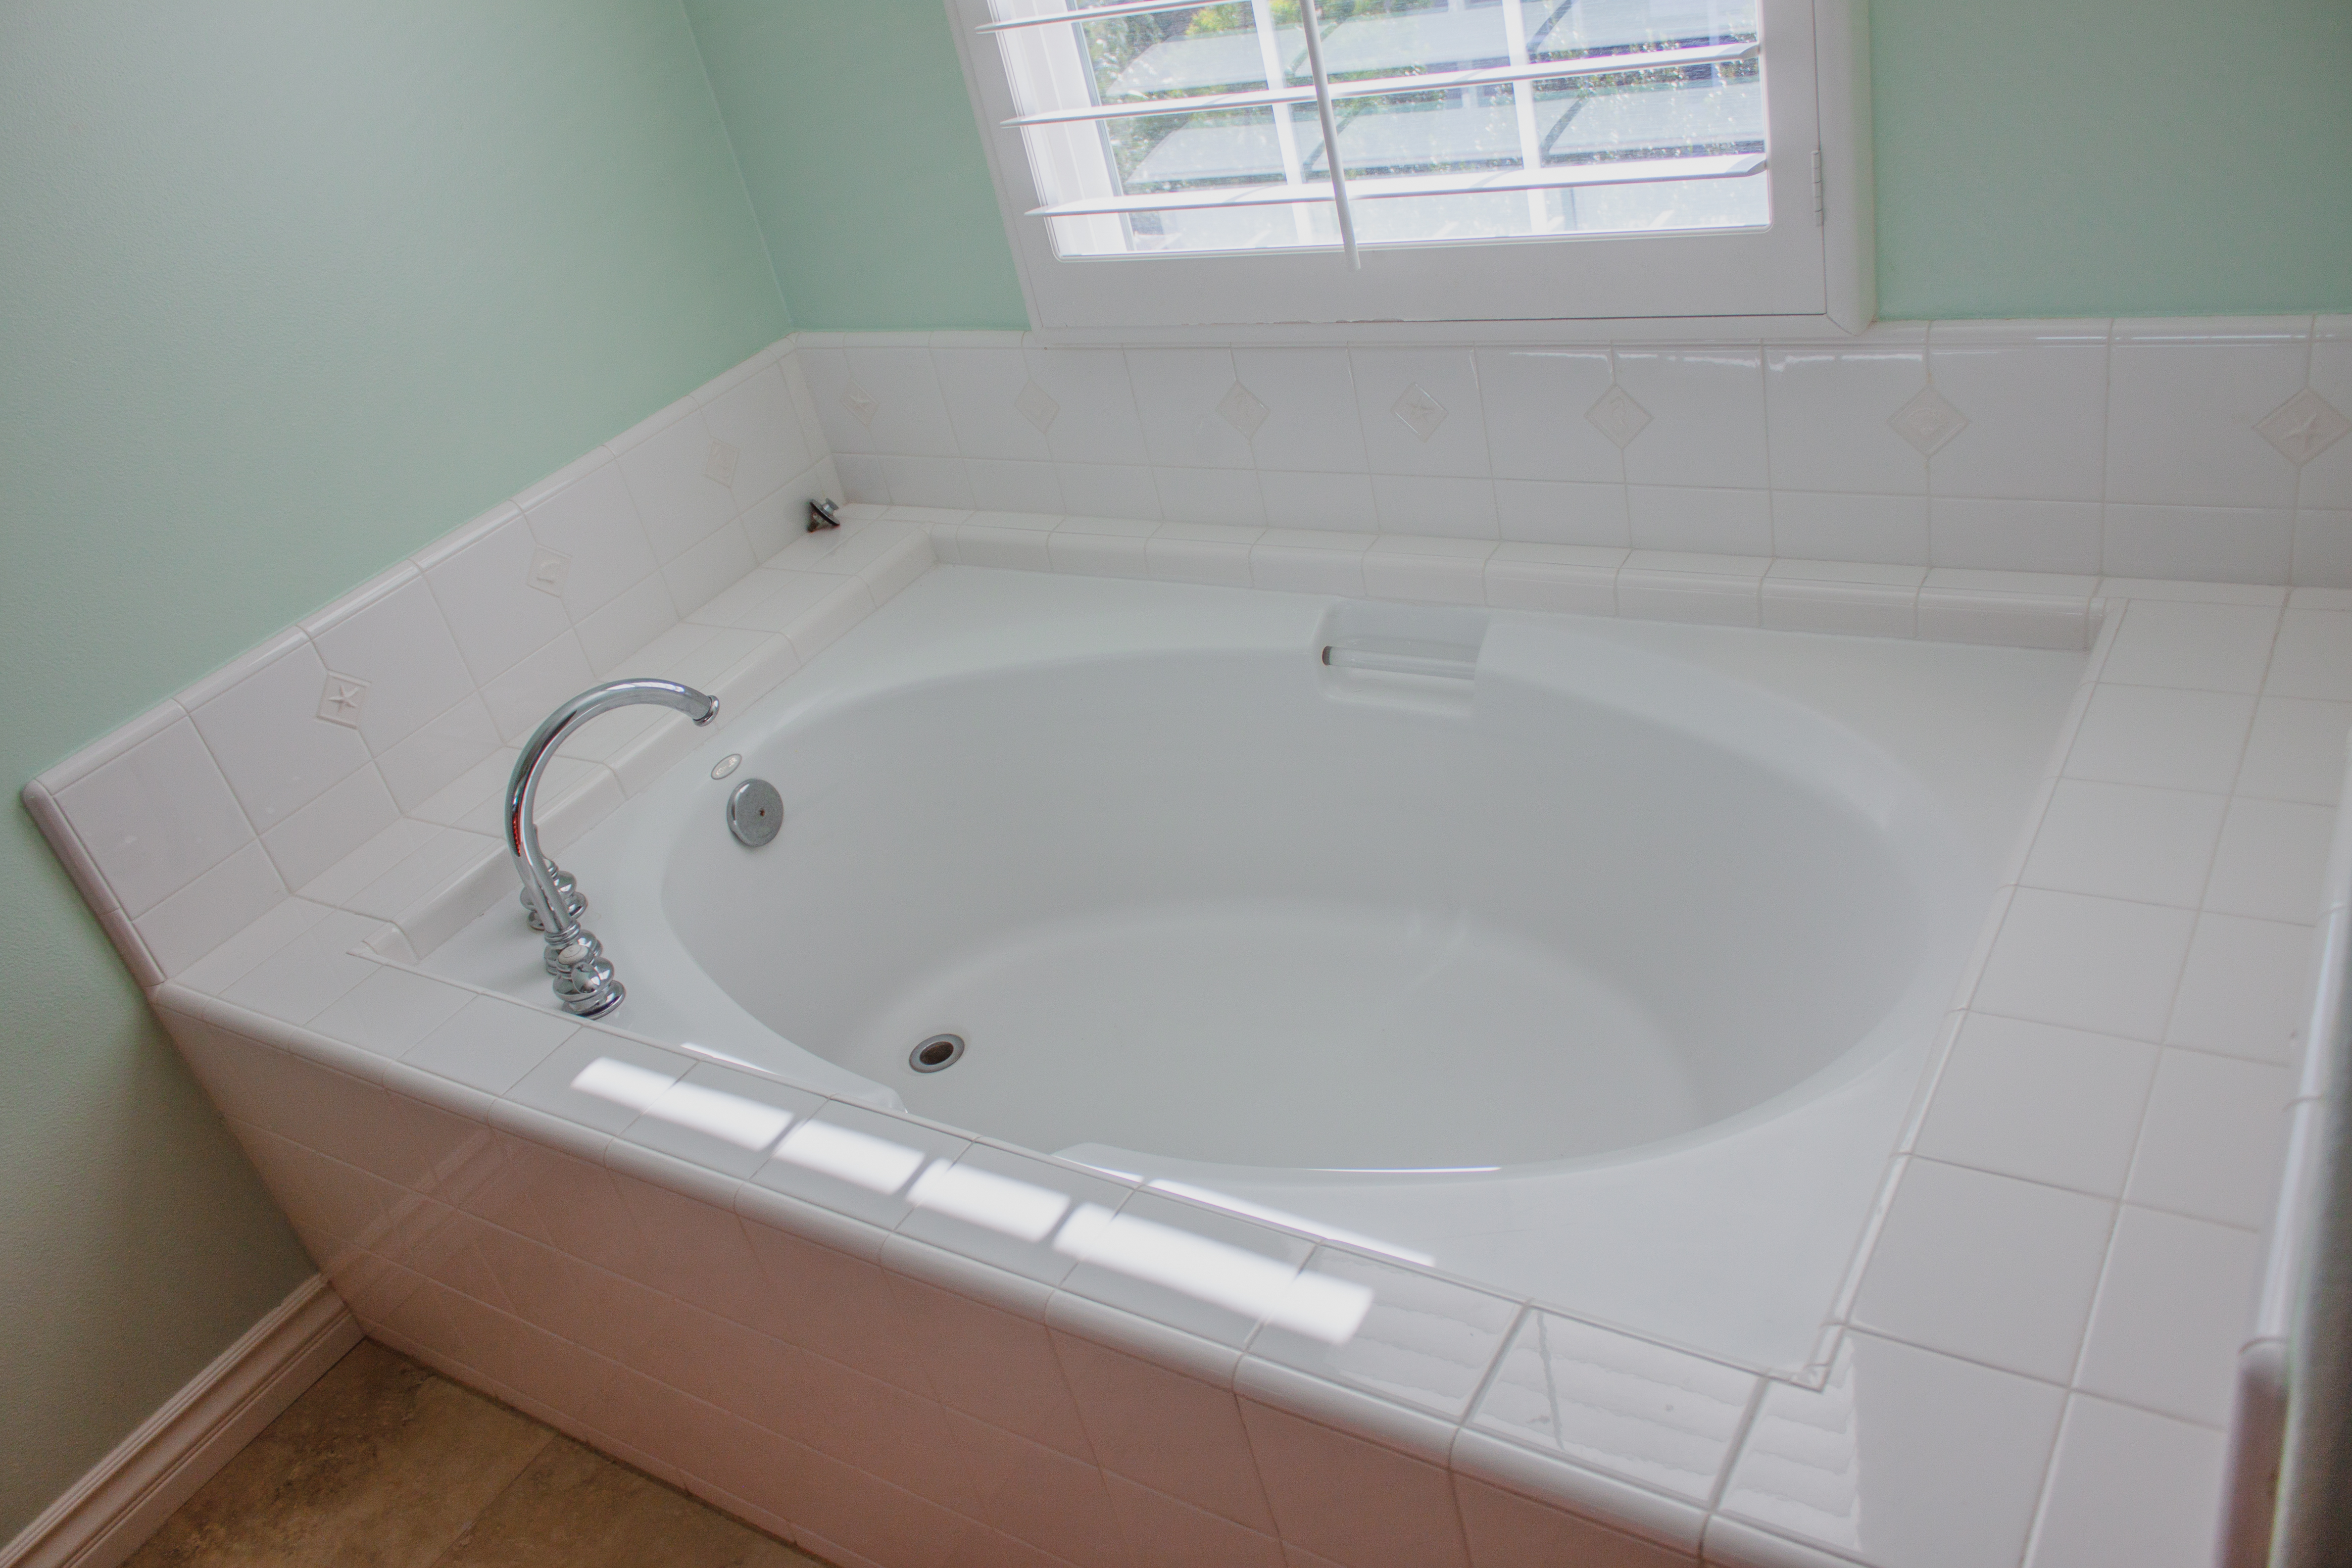 Separate Tub from Shower